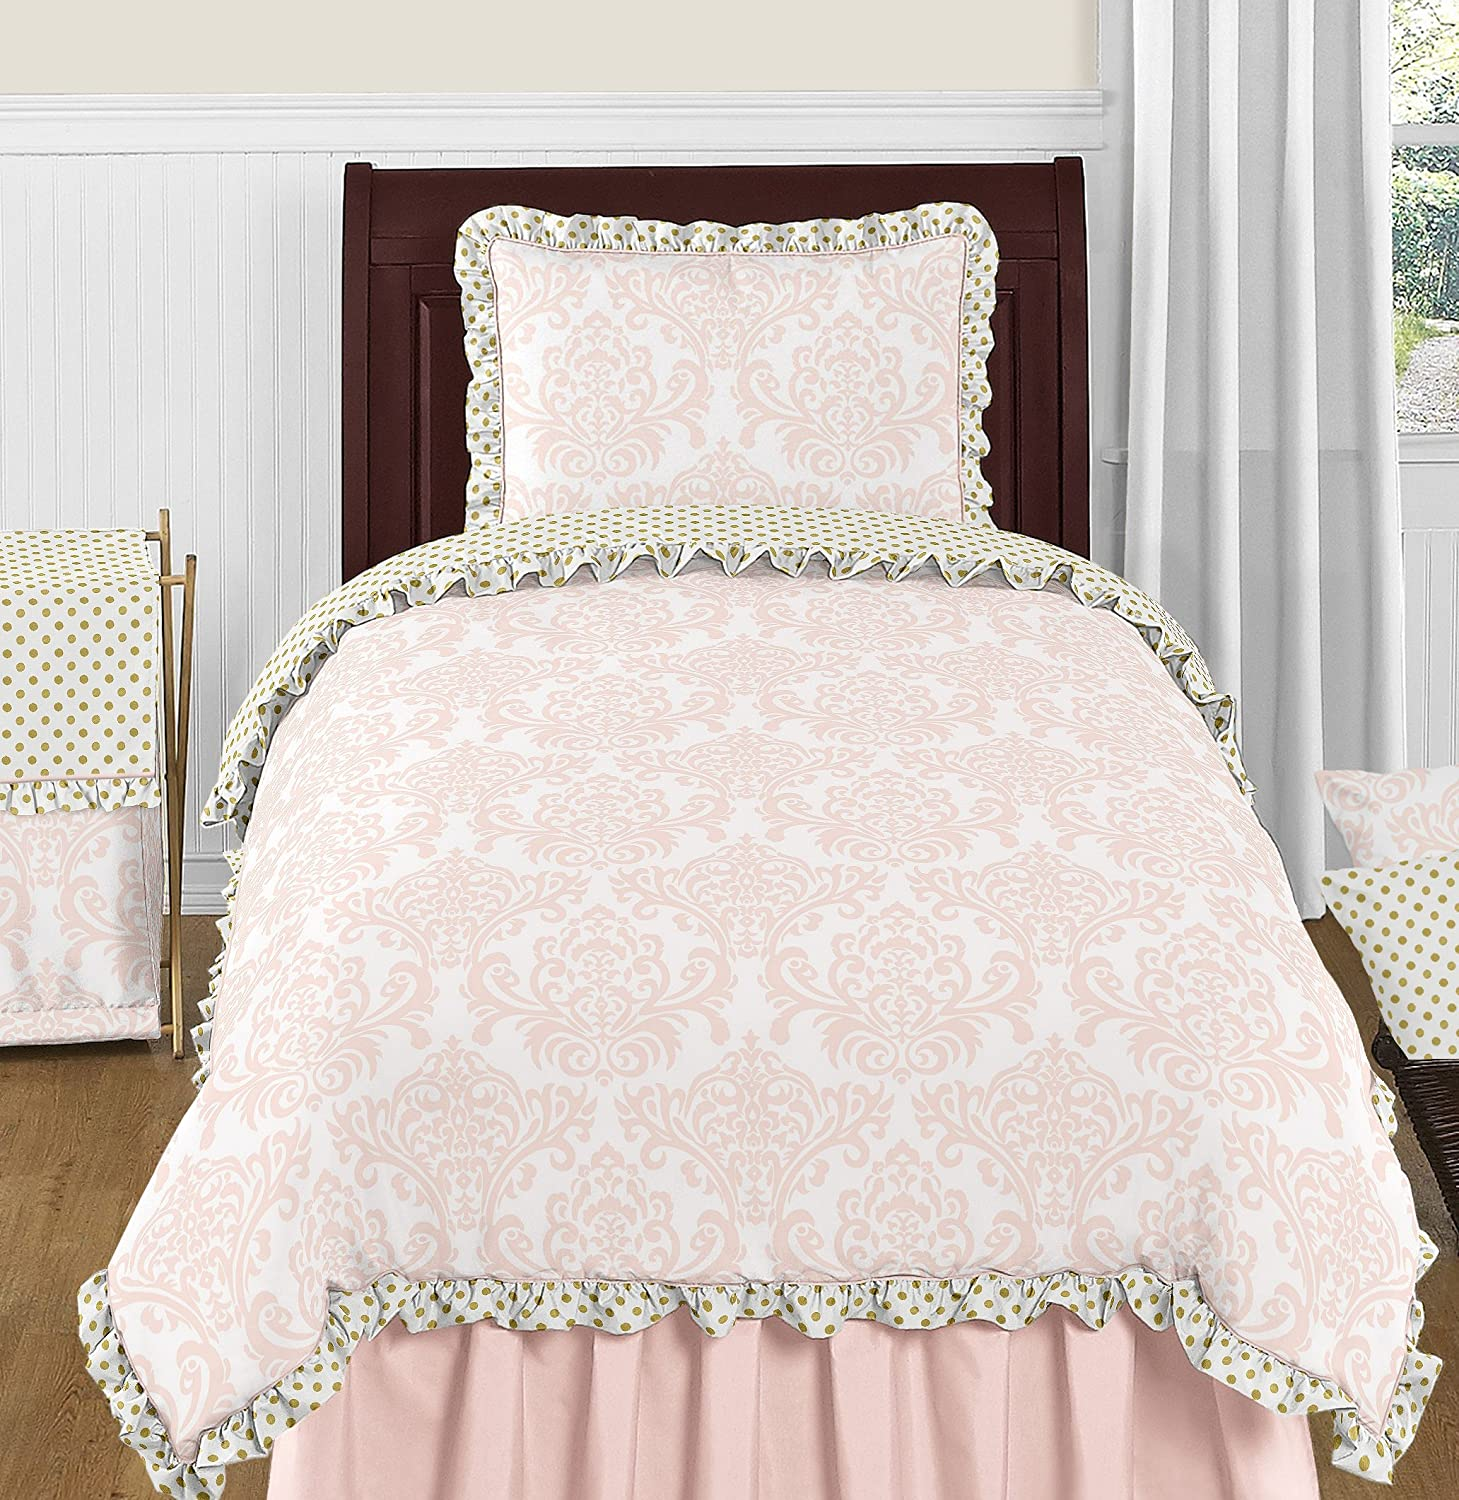 Blush Pink White Damask and Gold Polka Dot Amelia 4 Piece Girls Kids Childrens Twin Bedding Set